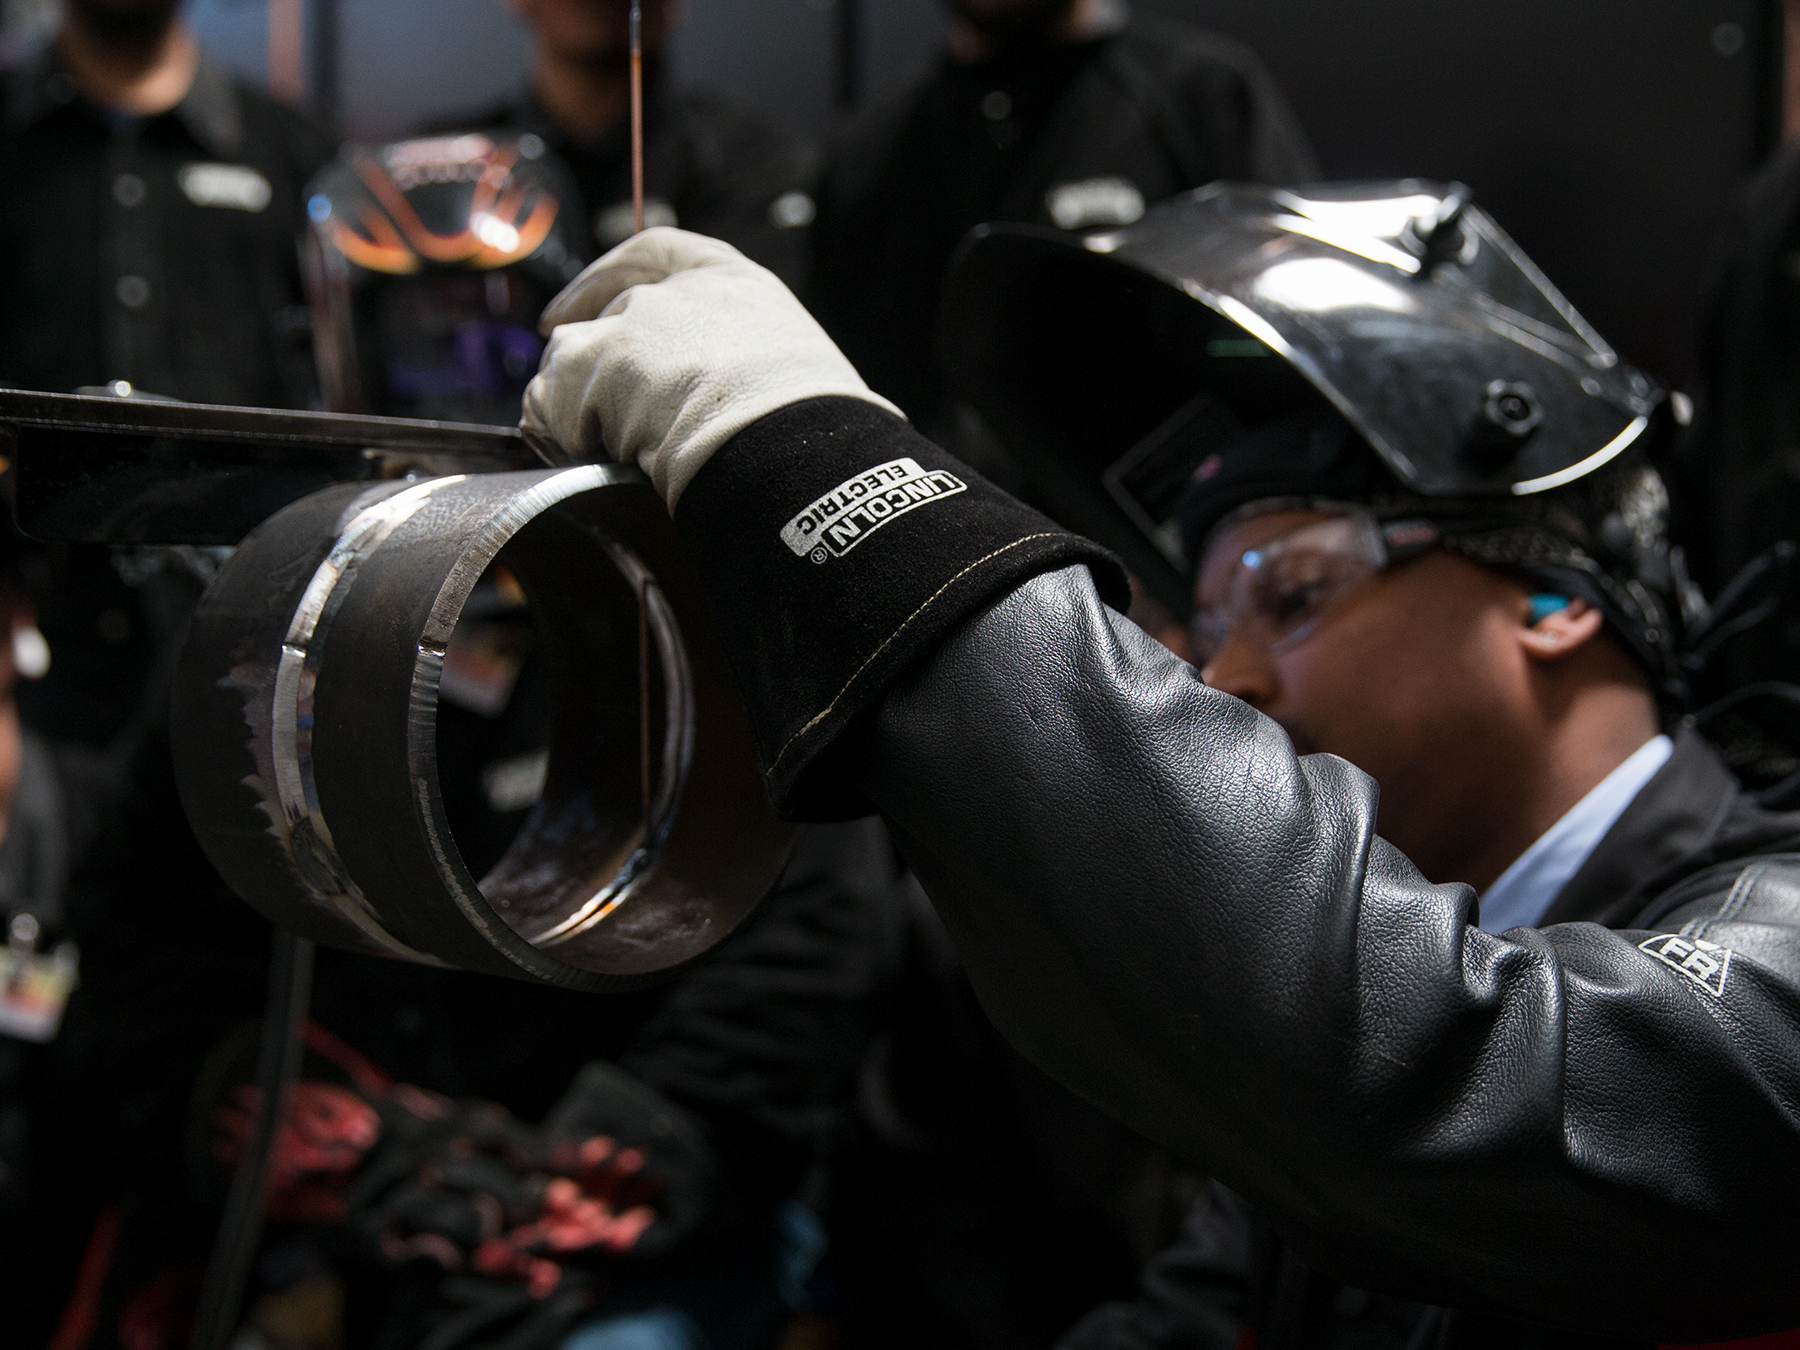 Welding instructor looking at  his weld